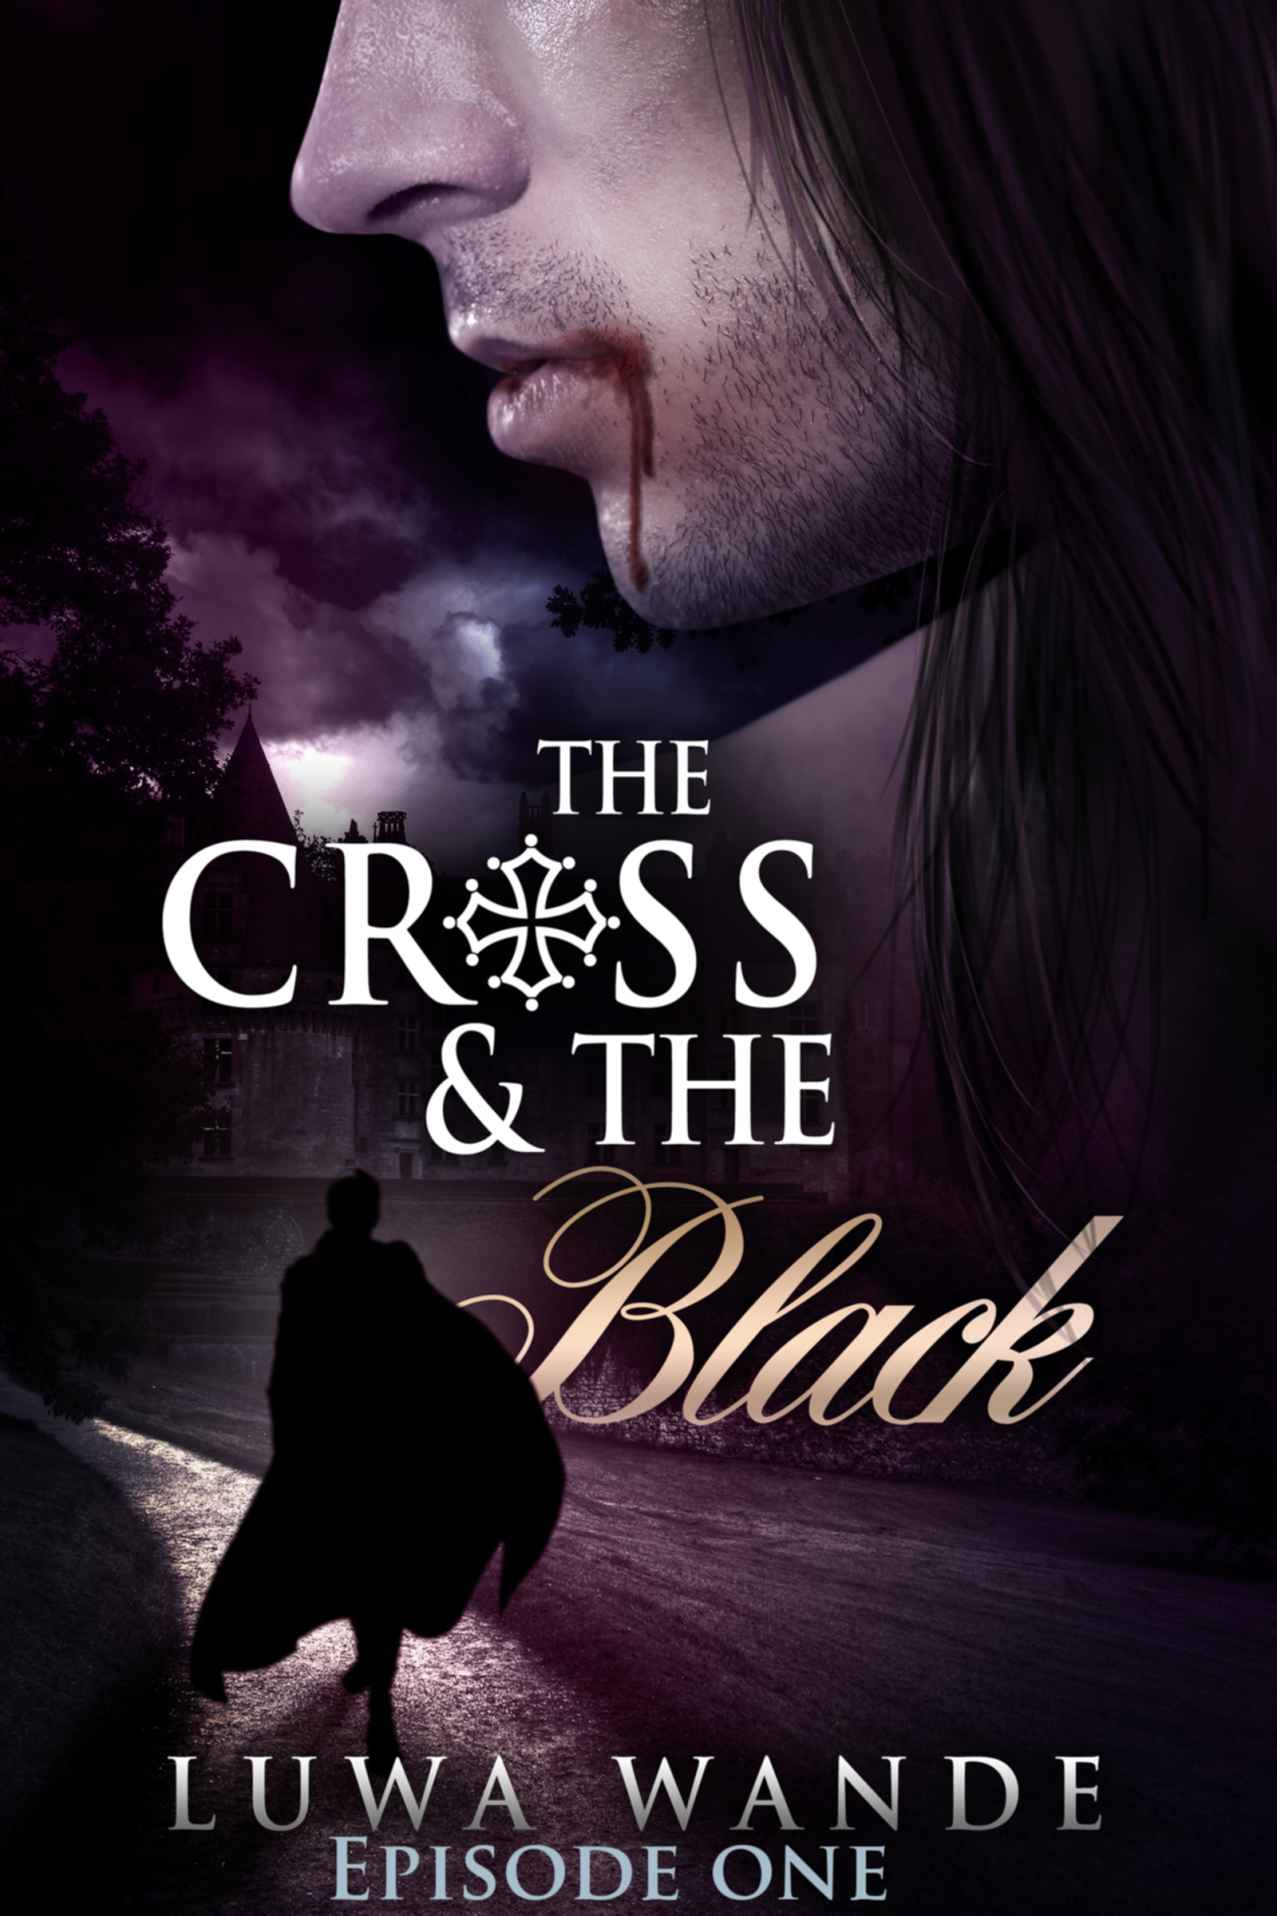 The Cross and the Black 1 by Luwa Wande